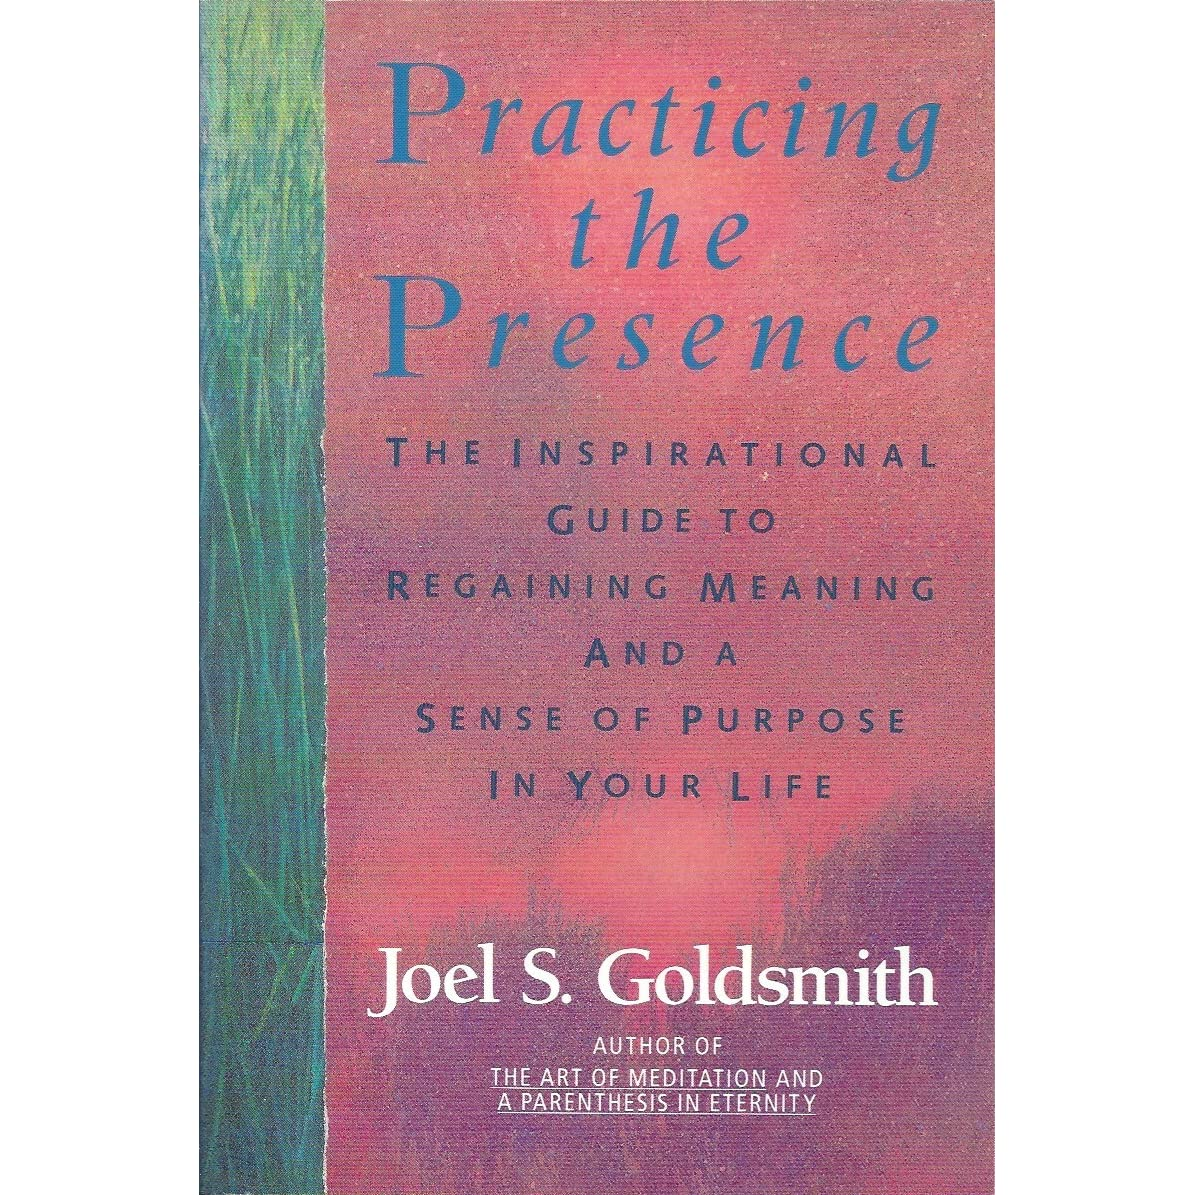 Practicing the presence the inspirational guide to regaining meaning and a sense of purpose in your life by joel s goldsmith